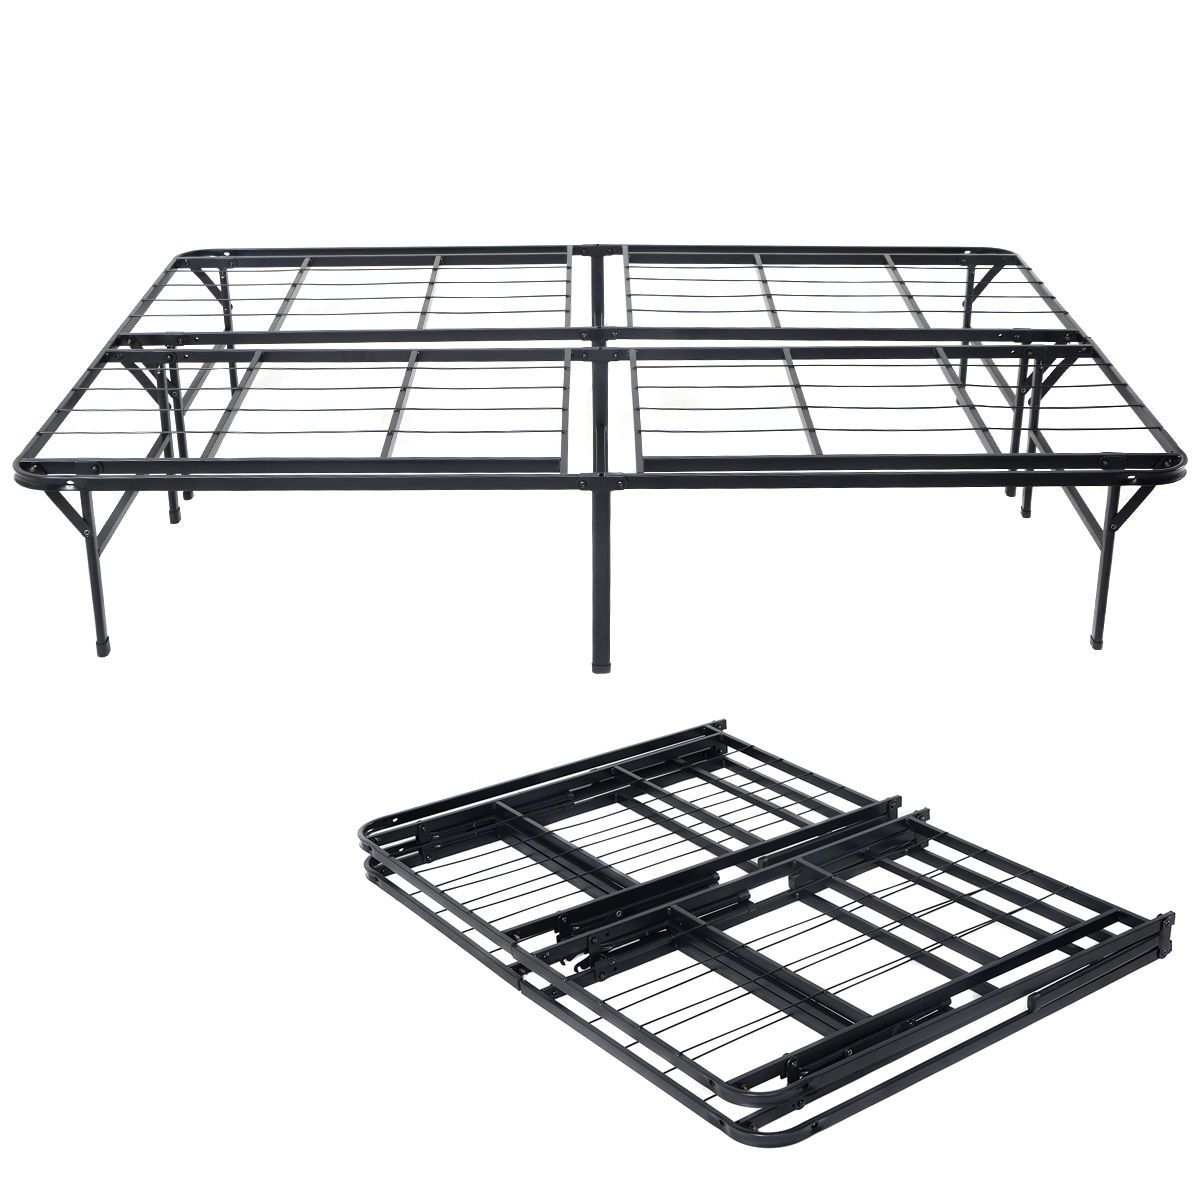 Black Heavy duty Folding Bed Platform Mattress Foundation